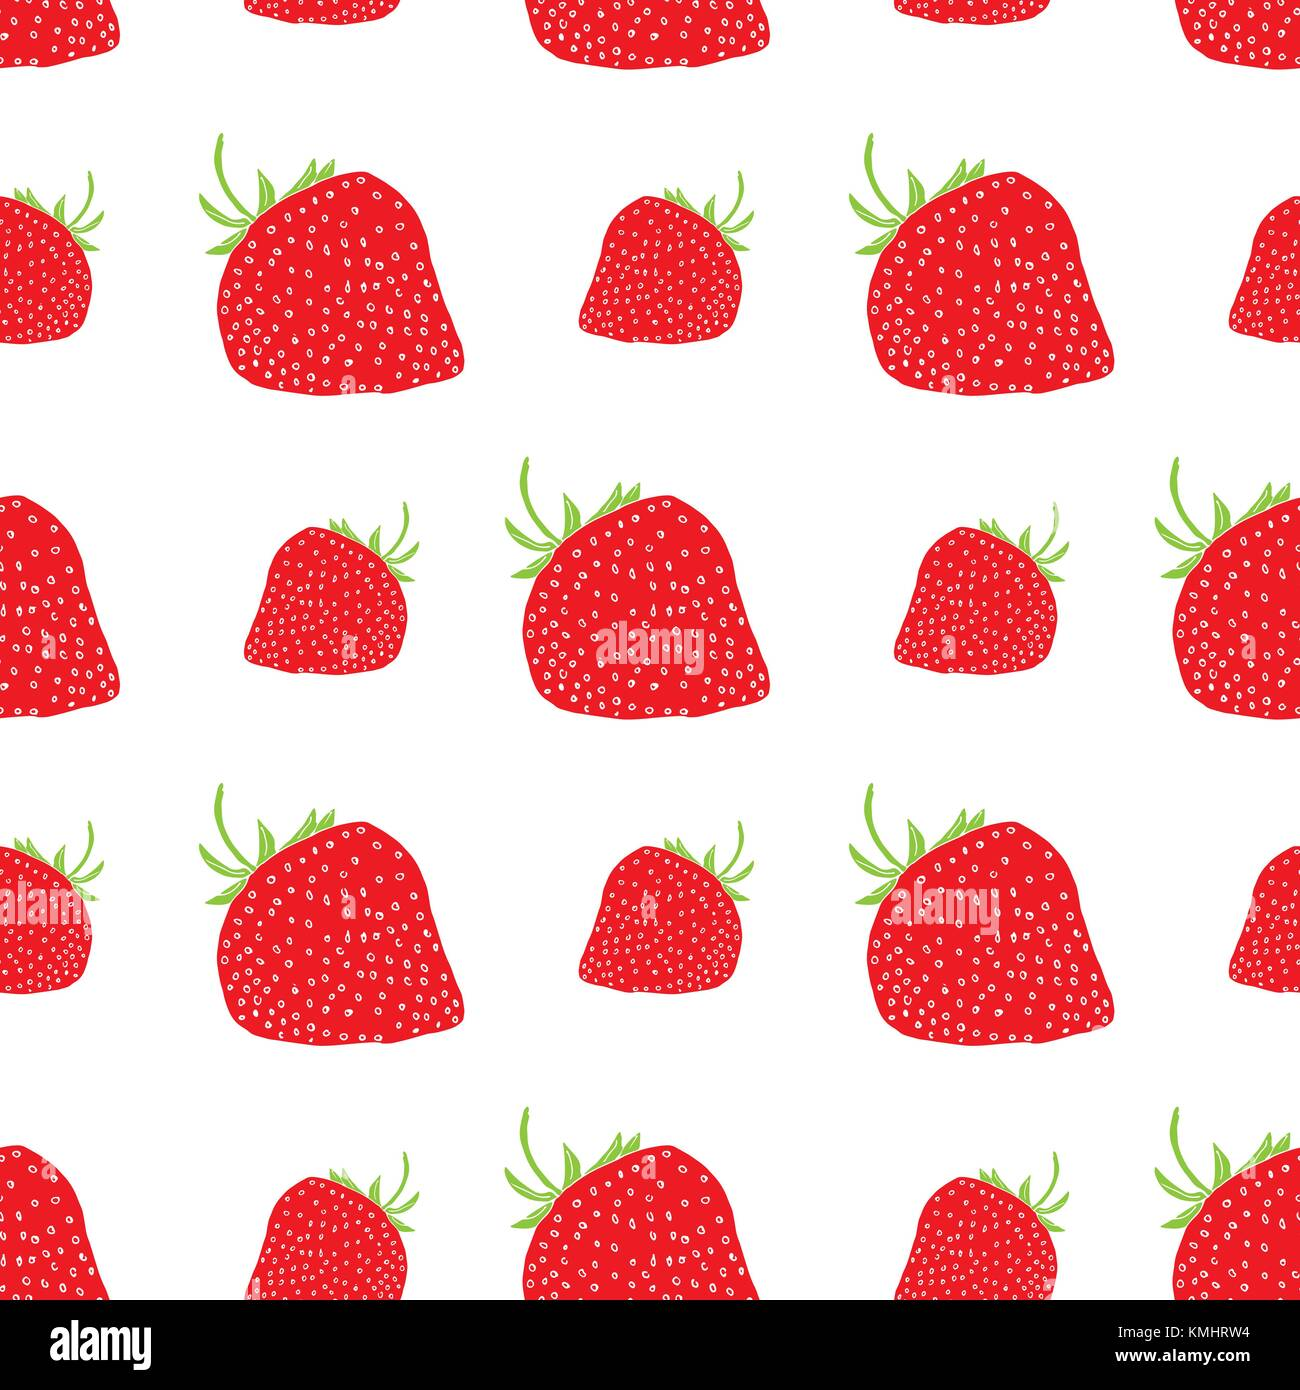 jam label design template for strawberry dessert product with hand